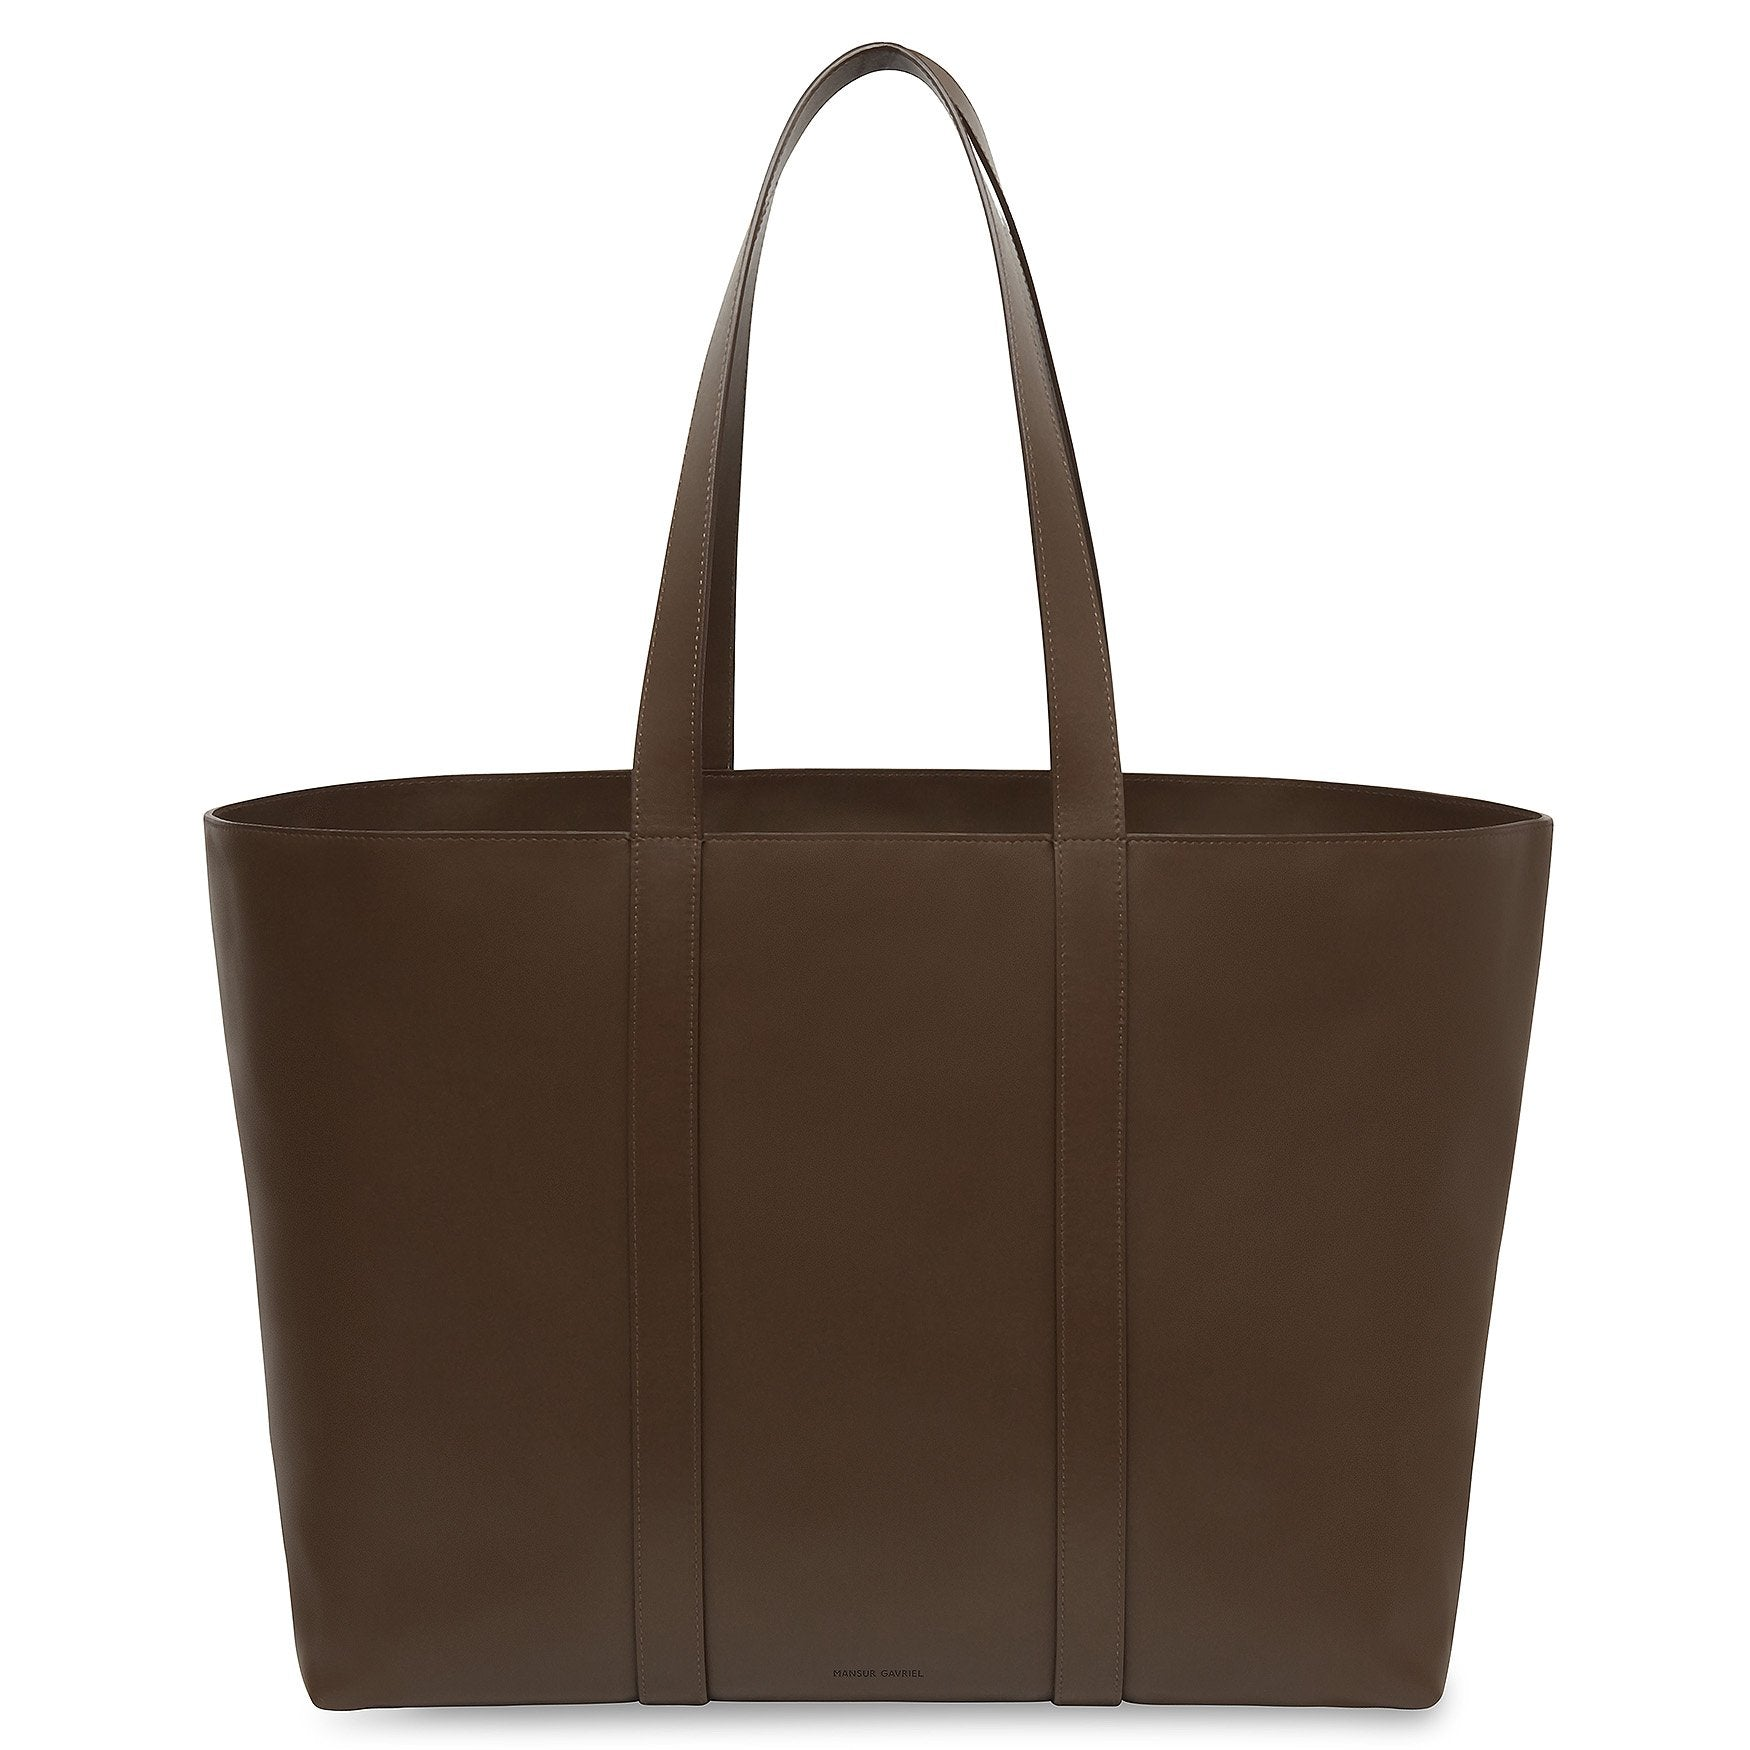 Mansur Gavriel Calf East West Tote In Chocolate